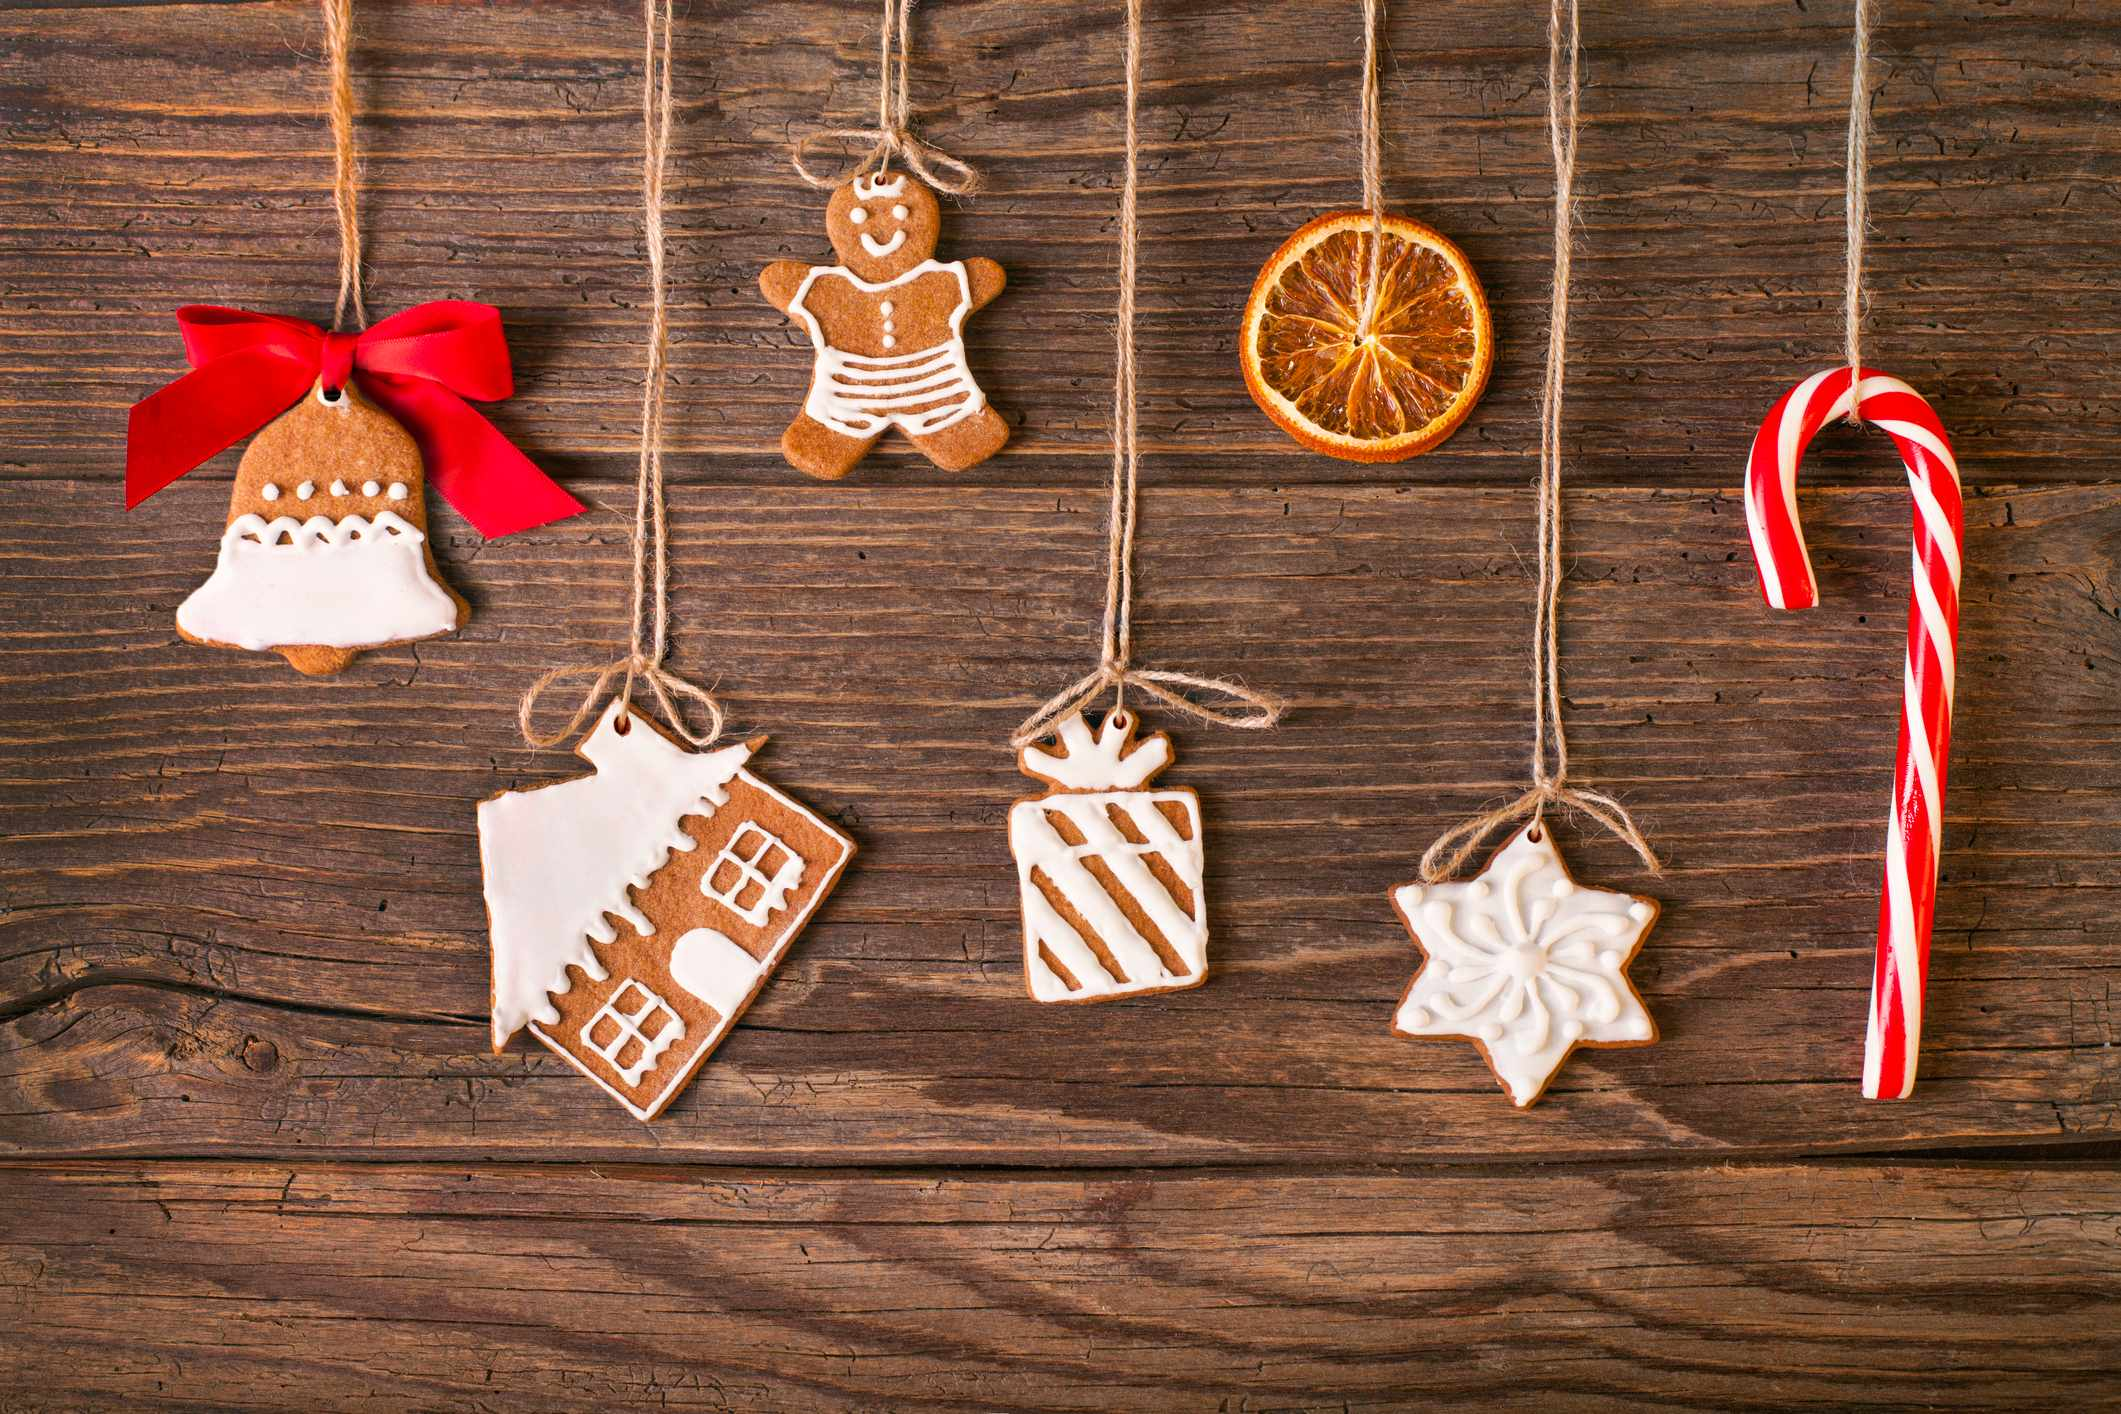 Christmas gingerbread cookies on wood background. Used gingerbread cookies home-handedly made it from me. They are unique pieces and can not be found anywhere.